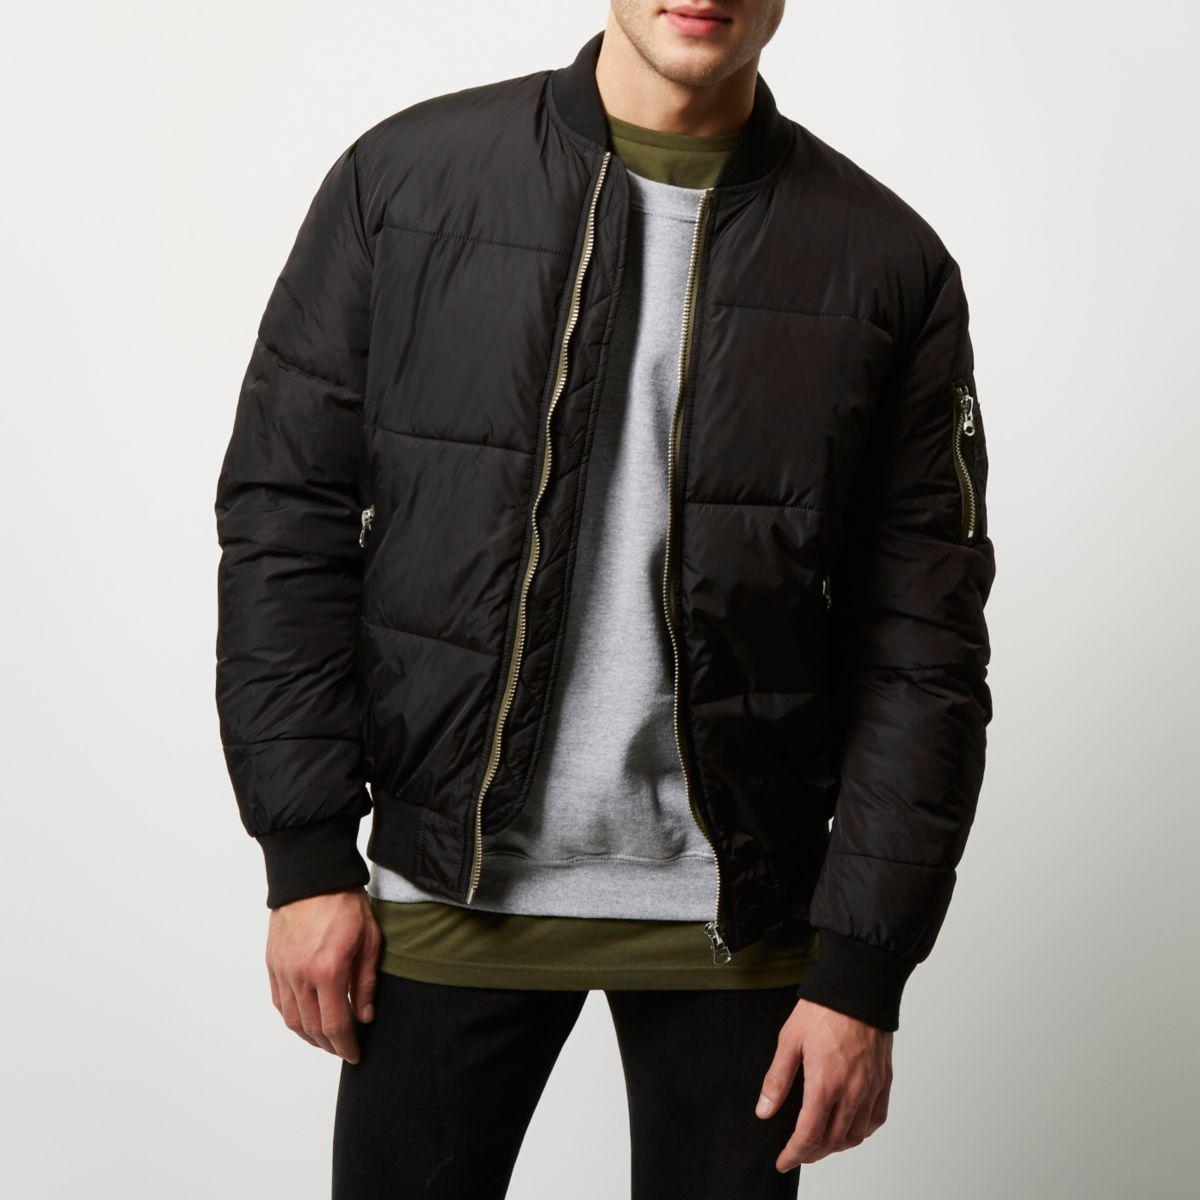 Leather Jacket Urban River Island